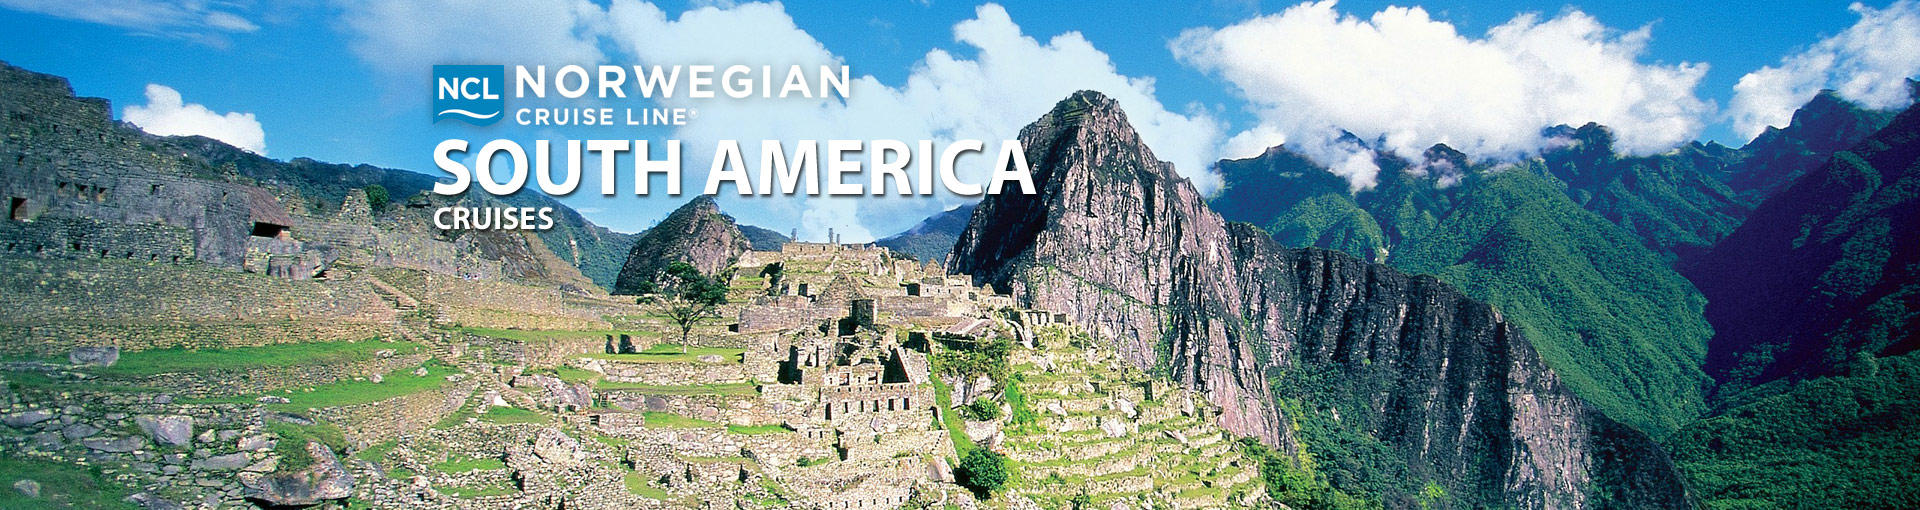 Norwegian Cruise Line South America Cruises